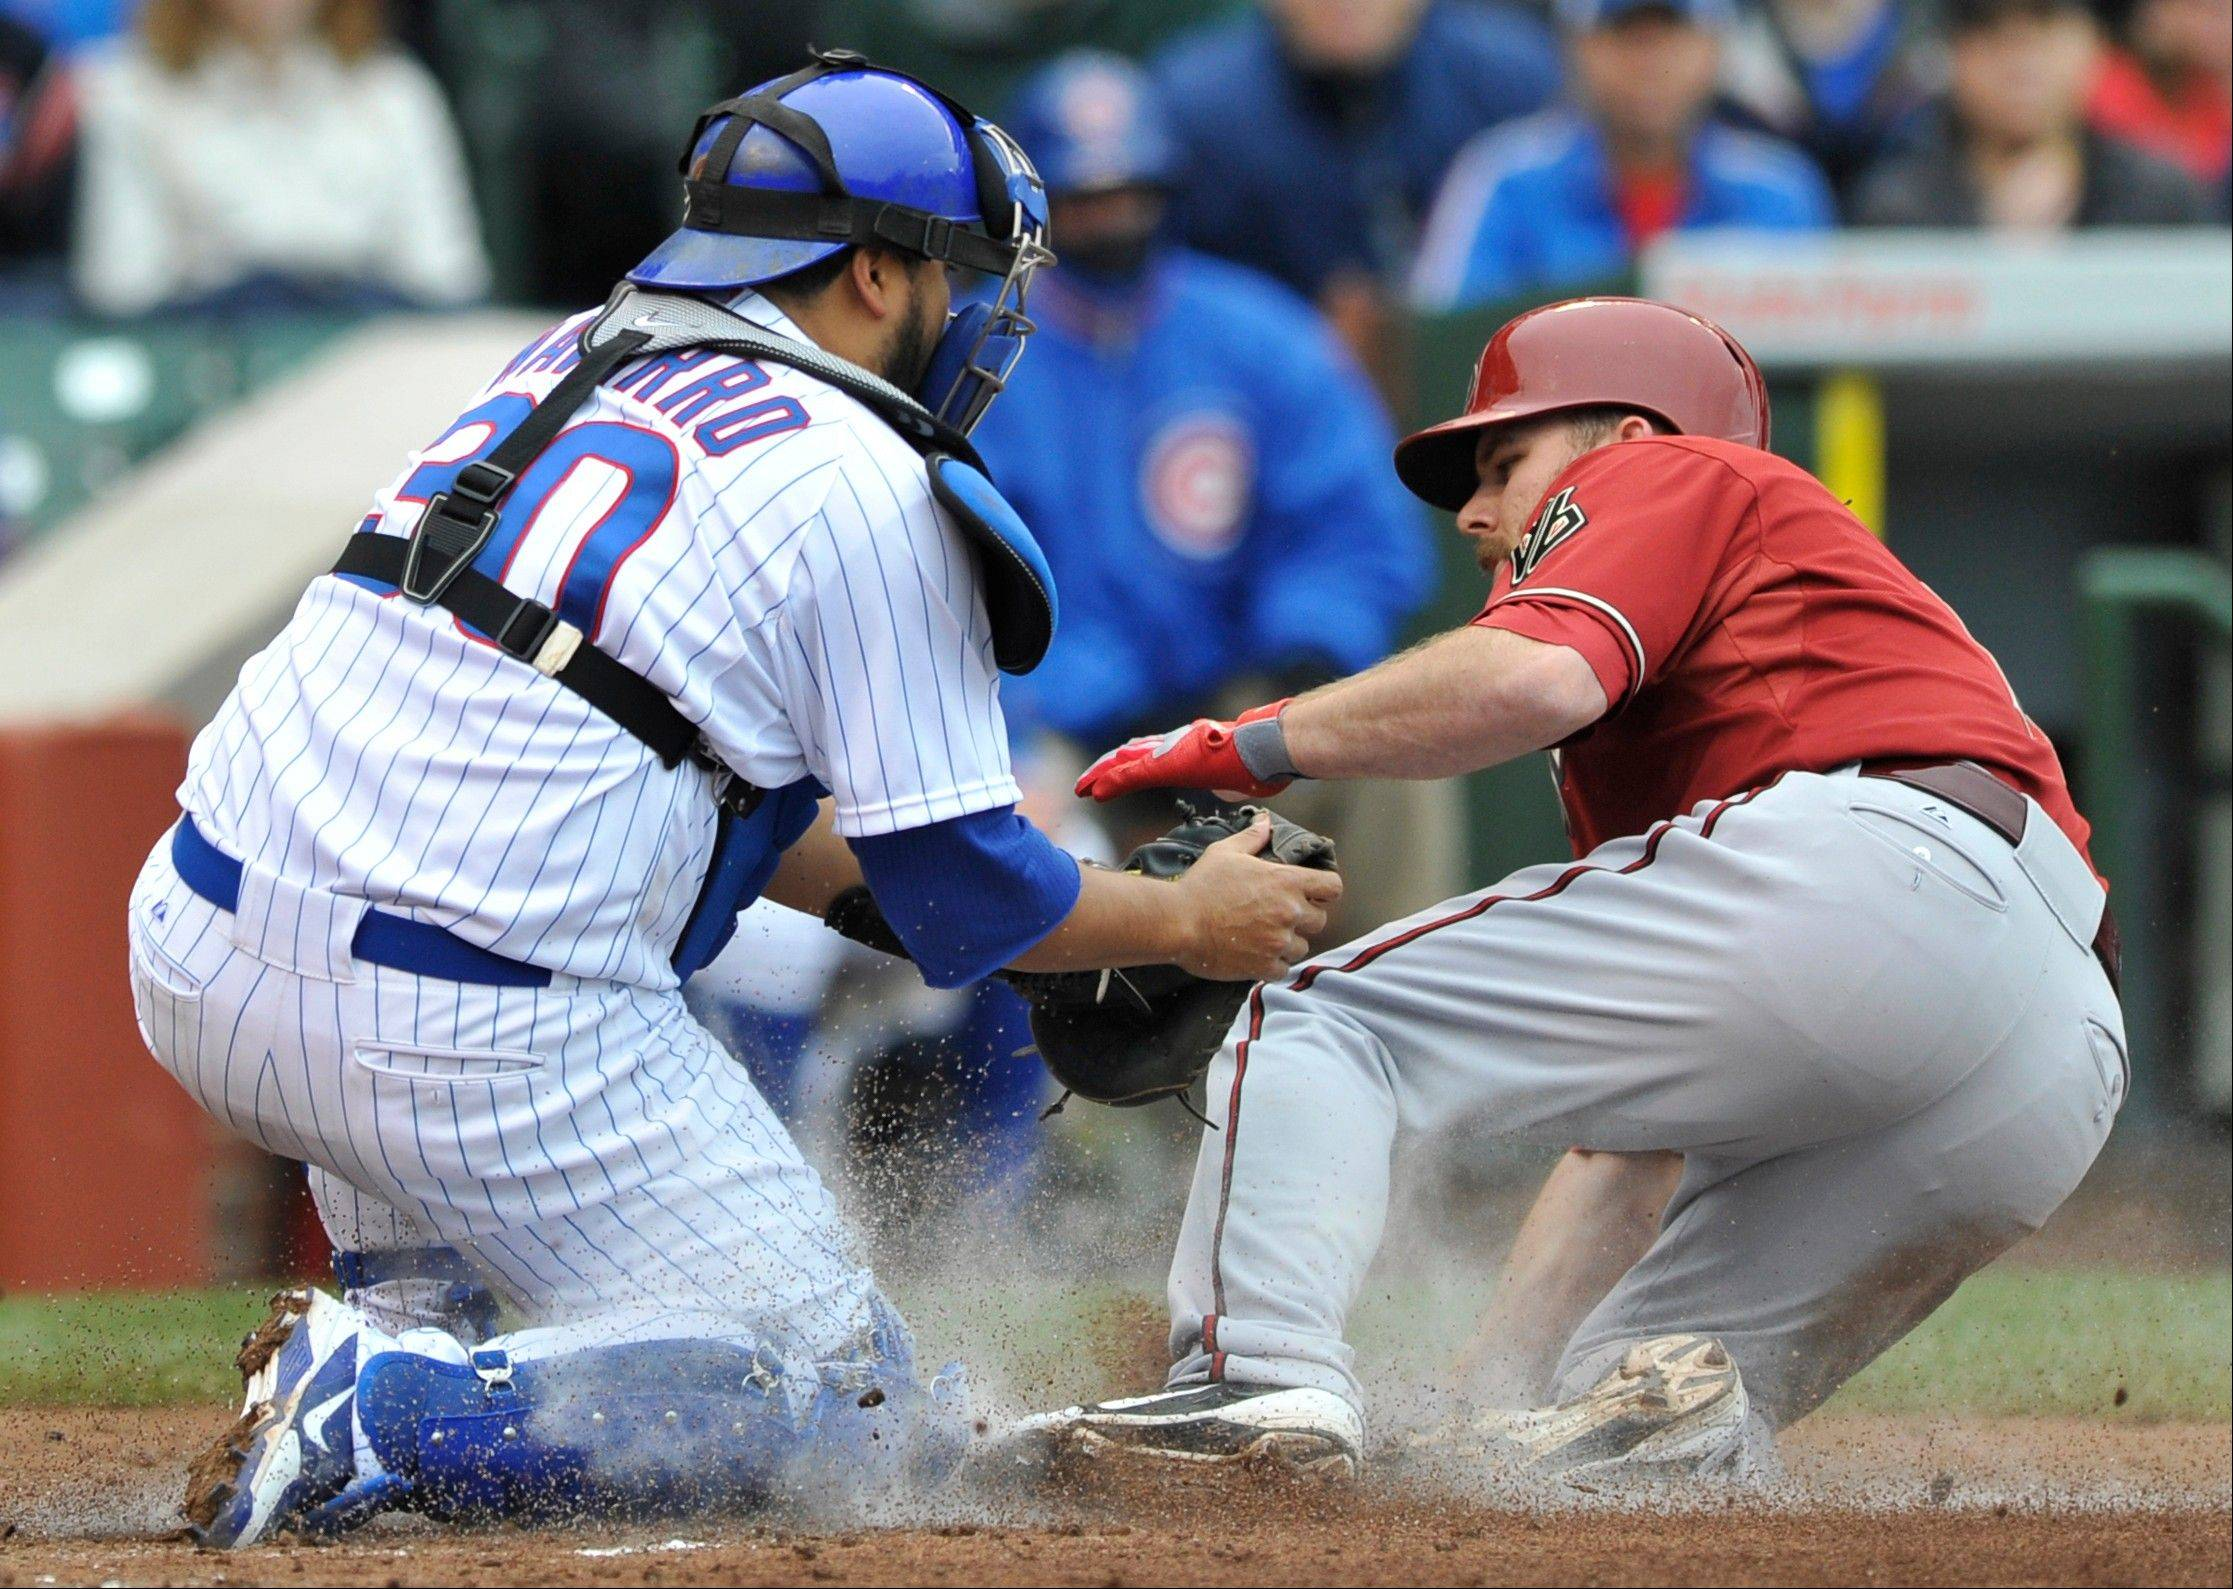 Arizona Diamondbacks� Jason Kubel right is tagged out by Chicago Cubs catcher Dioner Navarro left, at home plate after Wil Nieves grounded into a fielder�s choice during the second inning of an MLB baseball game against the Chicago Cubs in Chicago, Sunday, June 2, 2013.